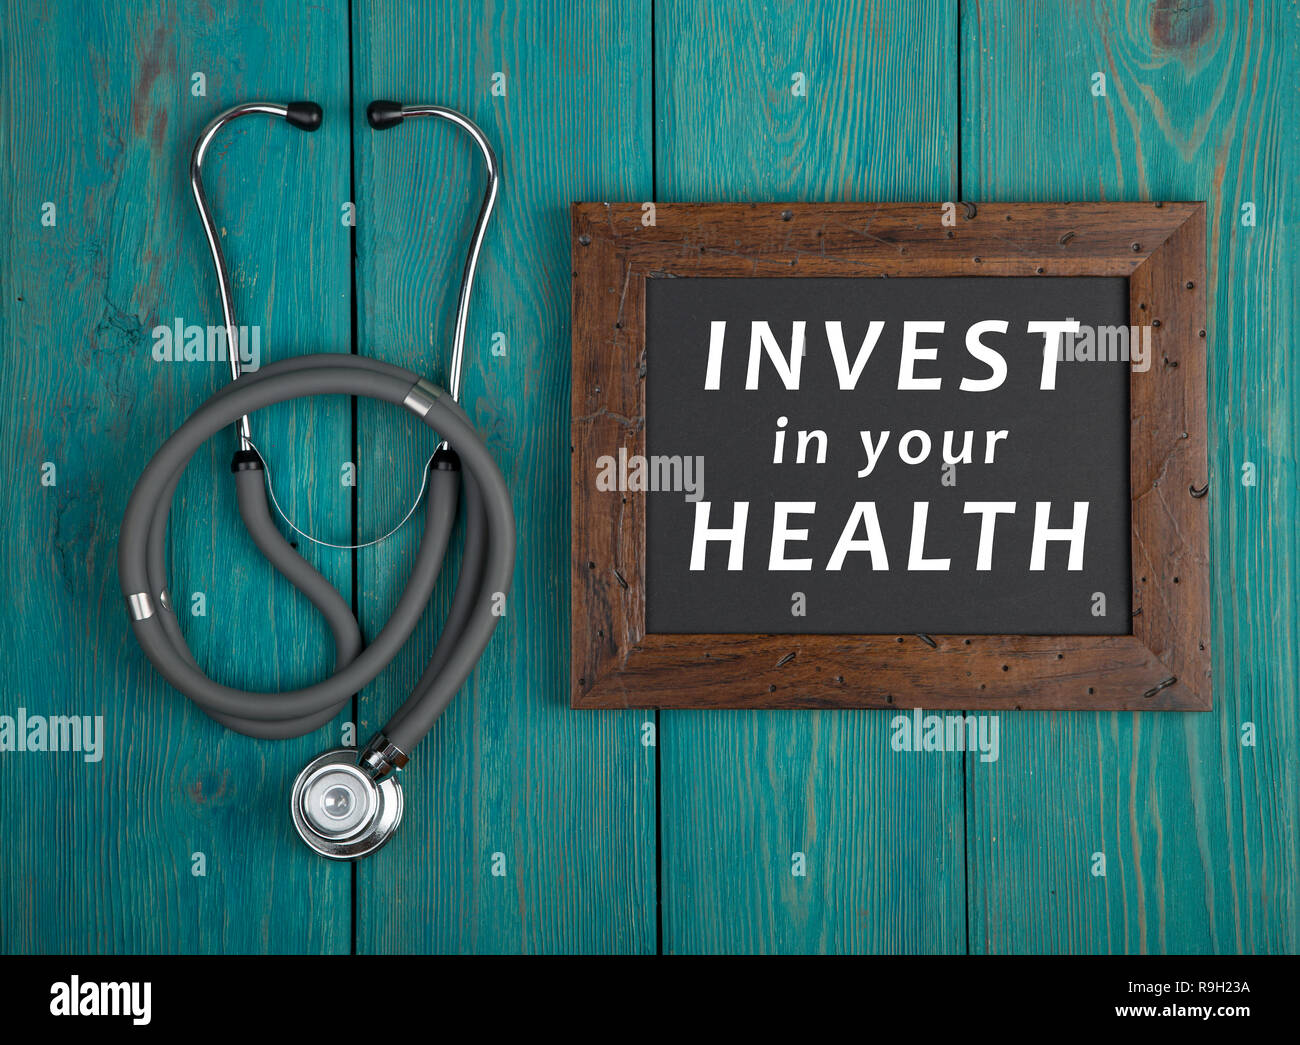 Medecine concept - Blackboard with text 'Invest in your health' and stethoscope on blue wooden background - Stock Image